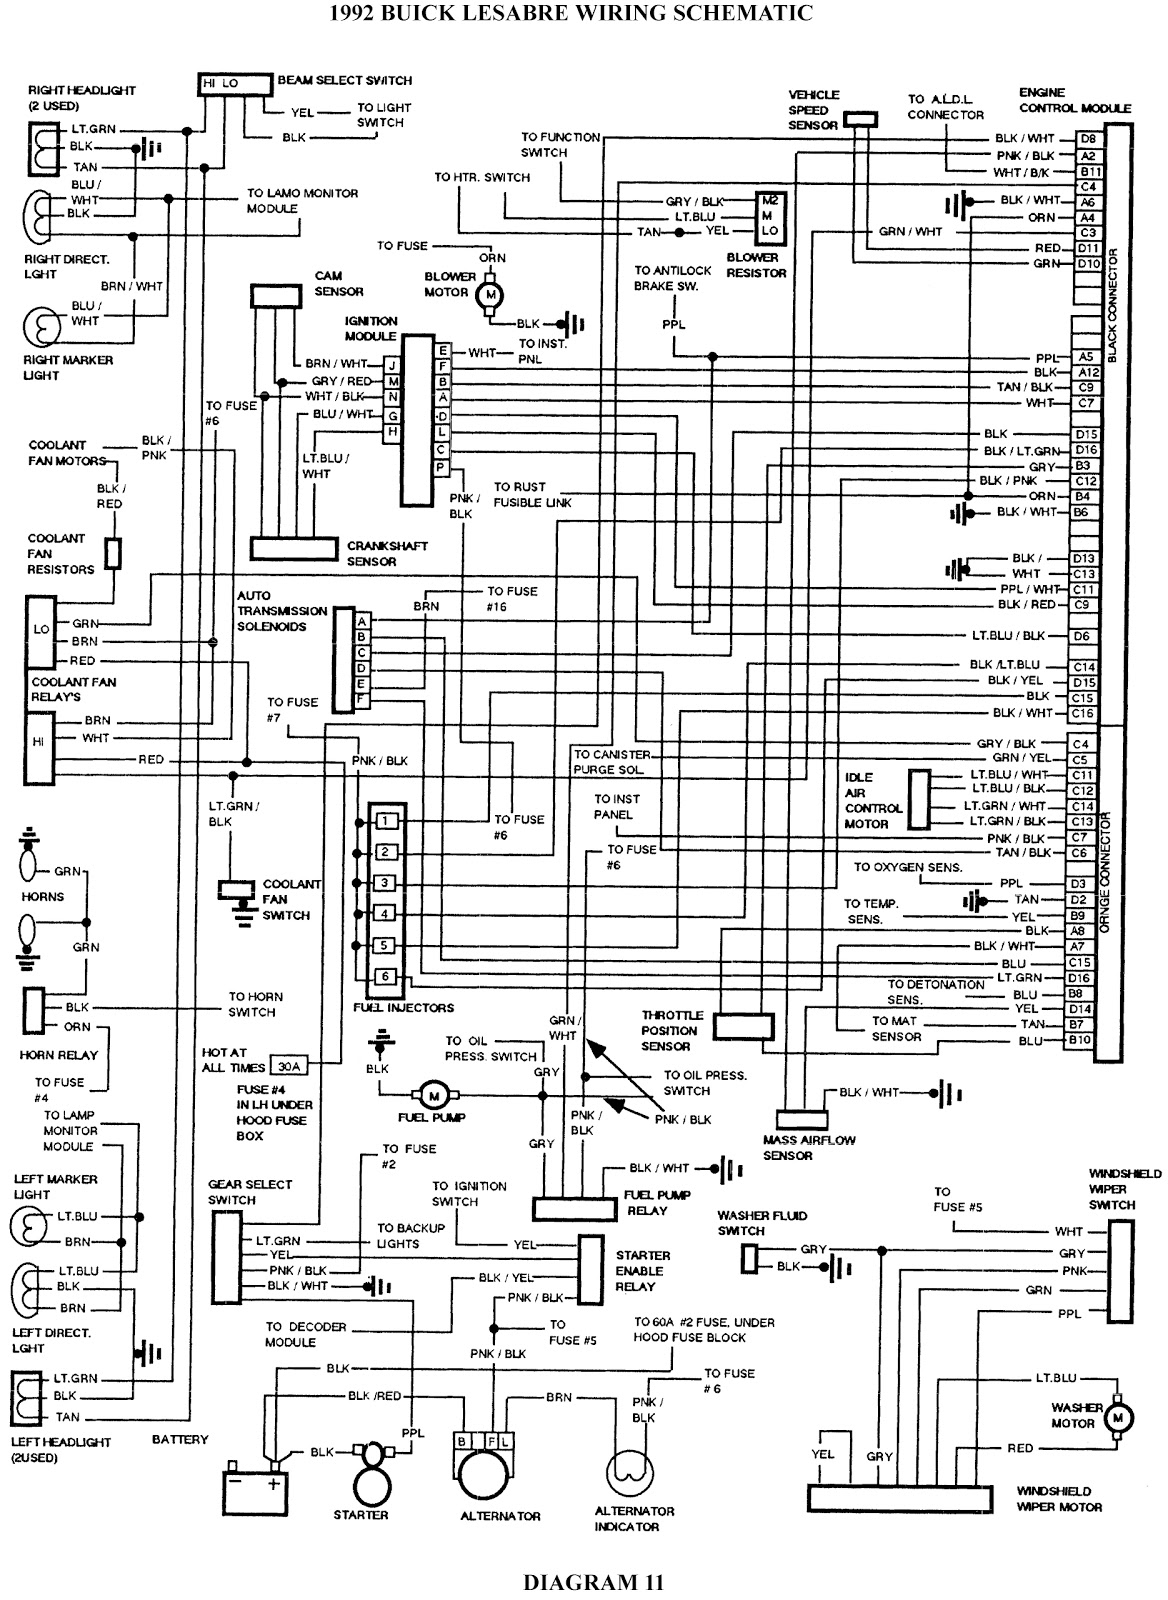 DIAGRAM] 99 Buick Lesabre Ac Wiring Diagram FULL Version HD Quality Wiring  Diagram - ELBOWDIAGRAM.BELLEILMERSION.FRDiagram Database